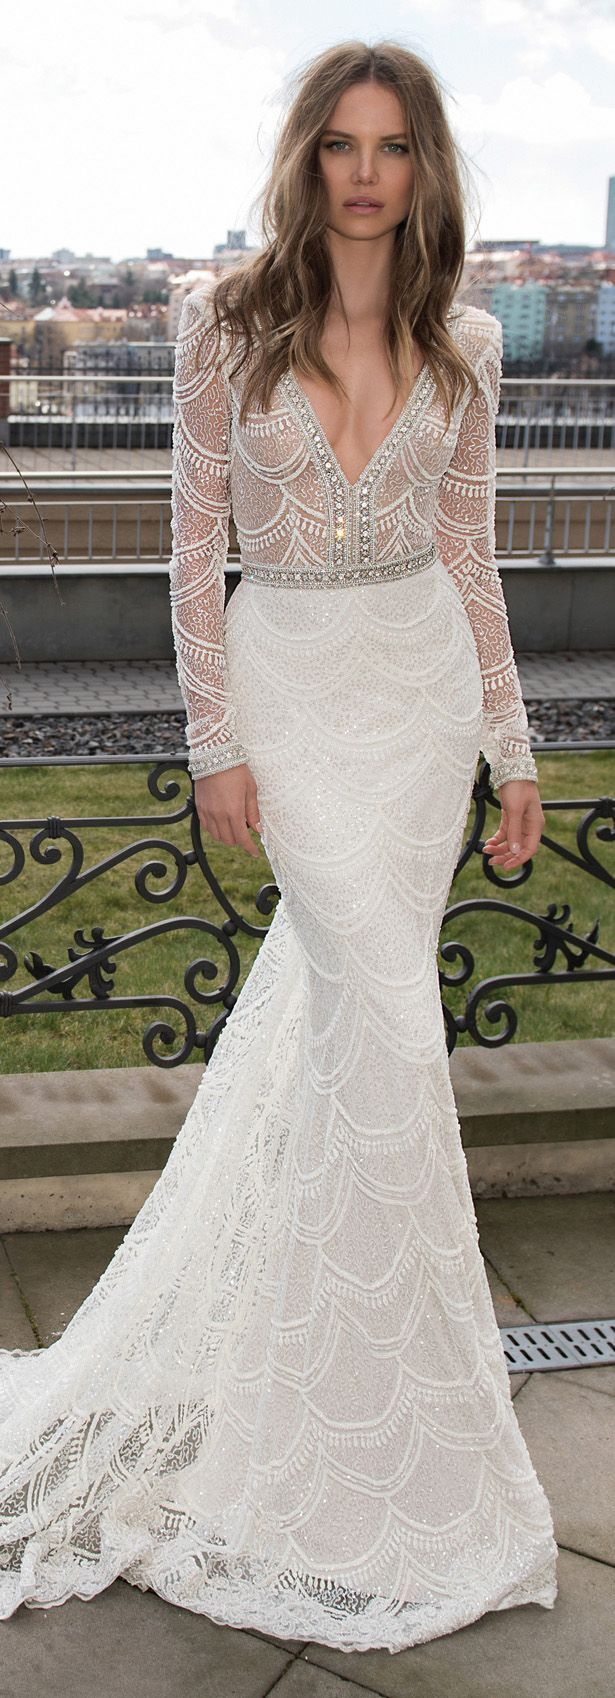 pulchritudinous wedding dresses designer with sleeves zuhair murad 2016-2017